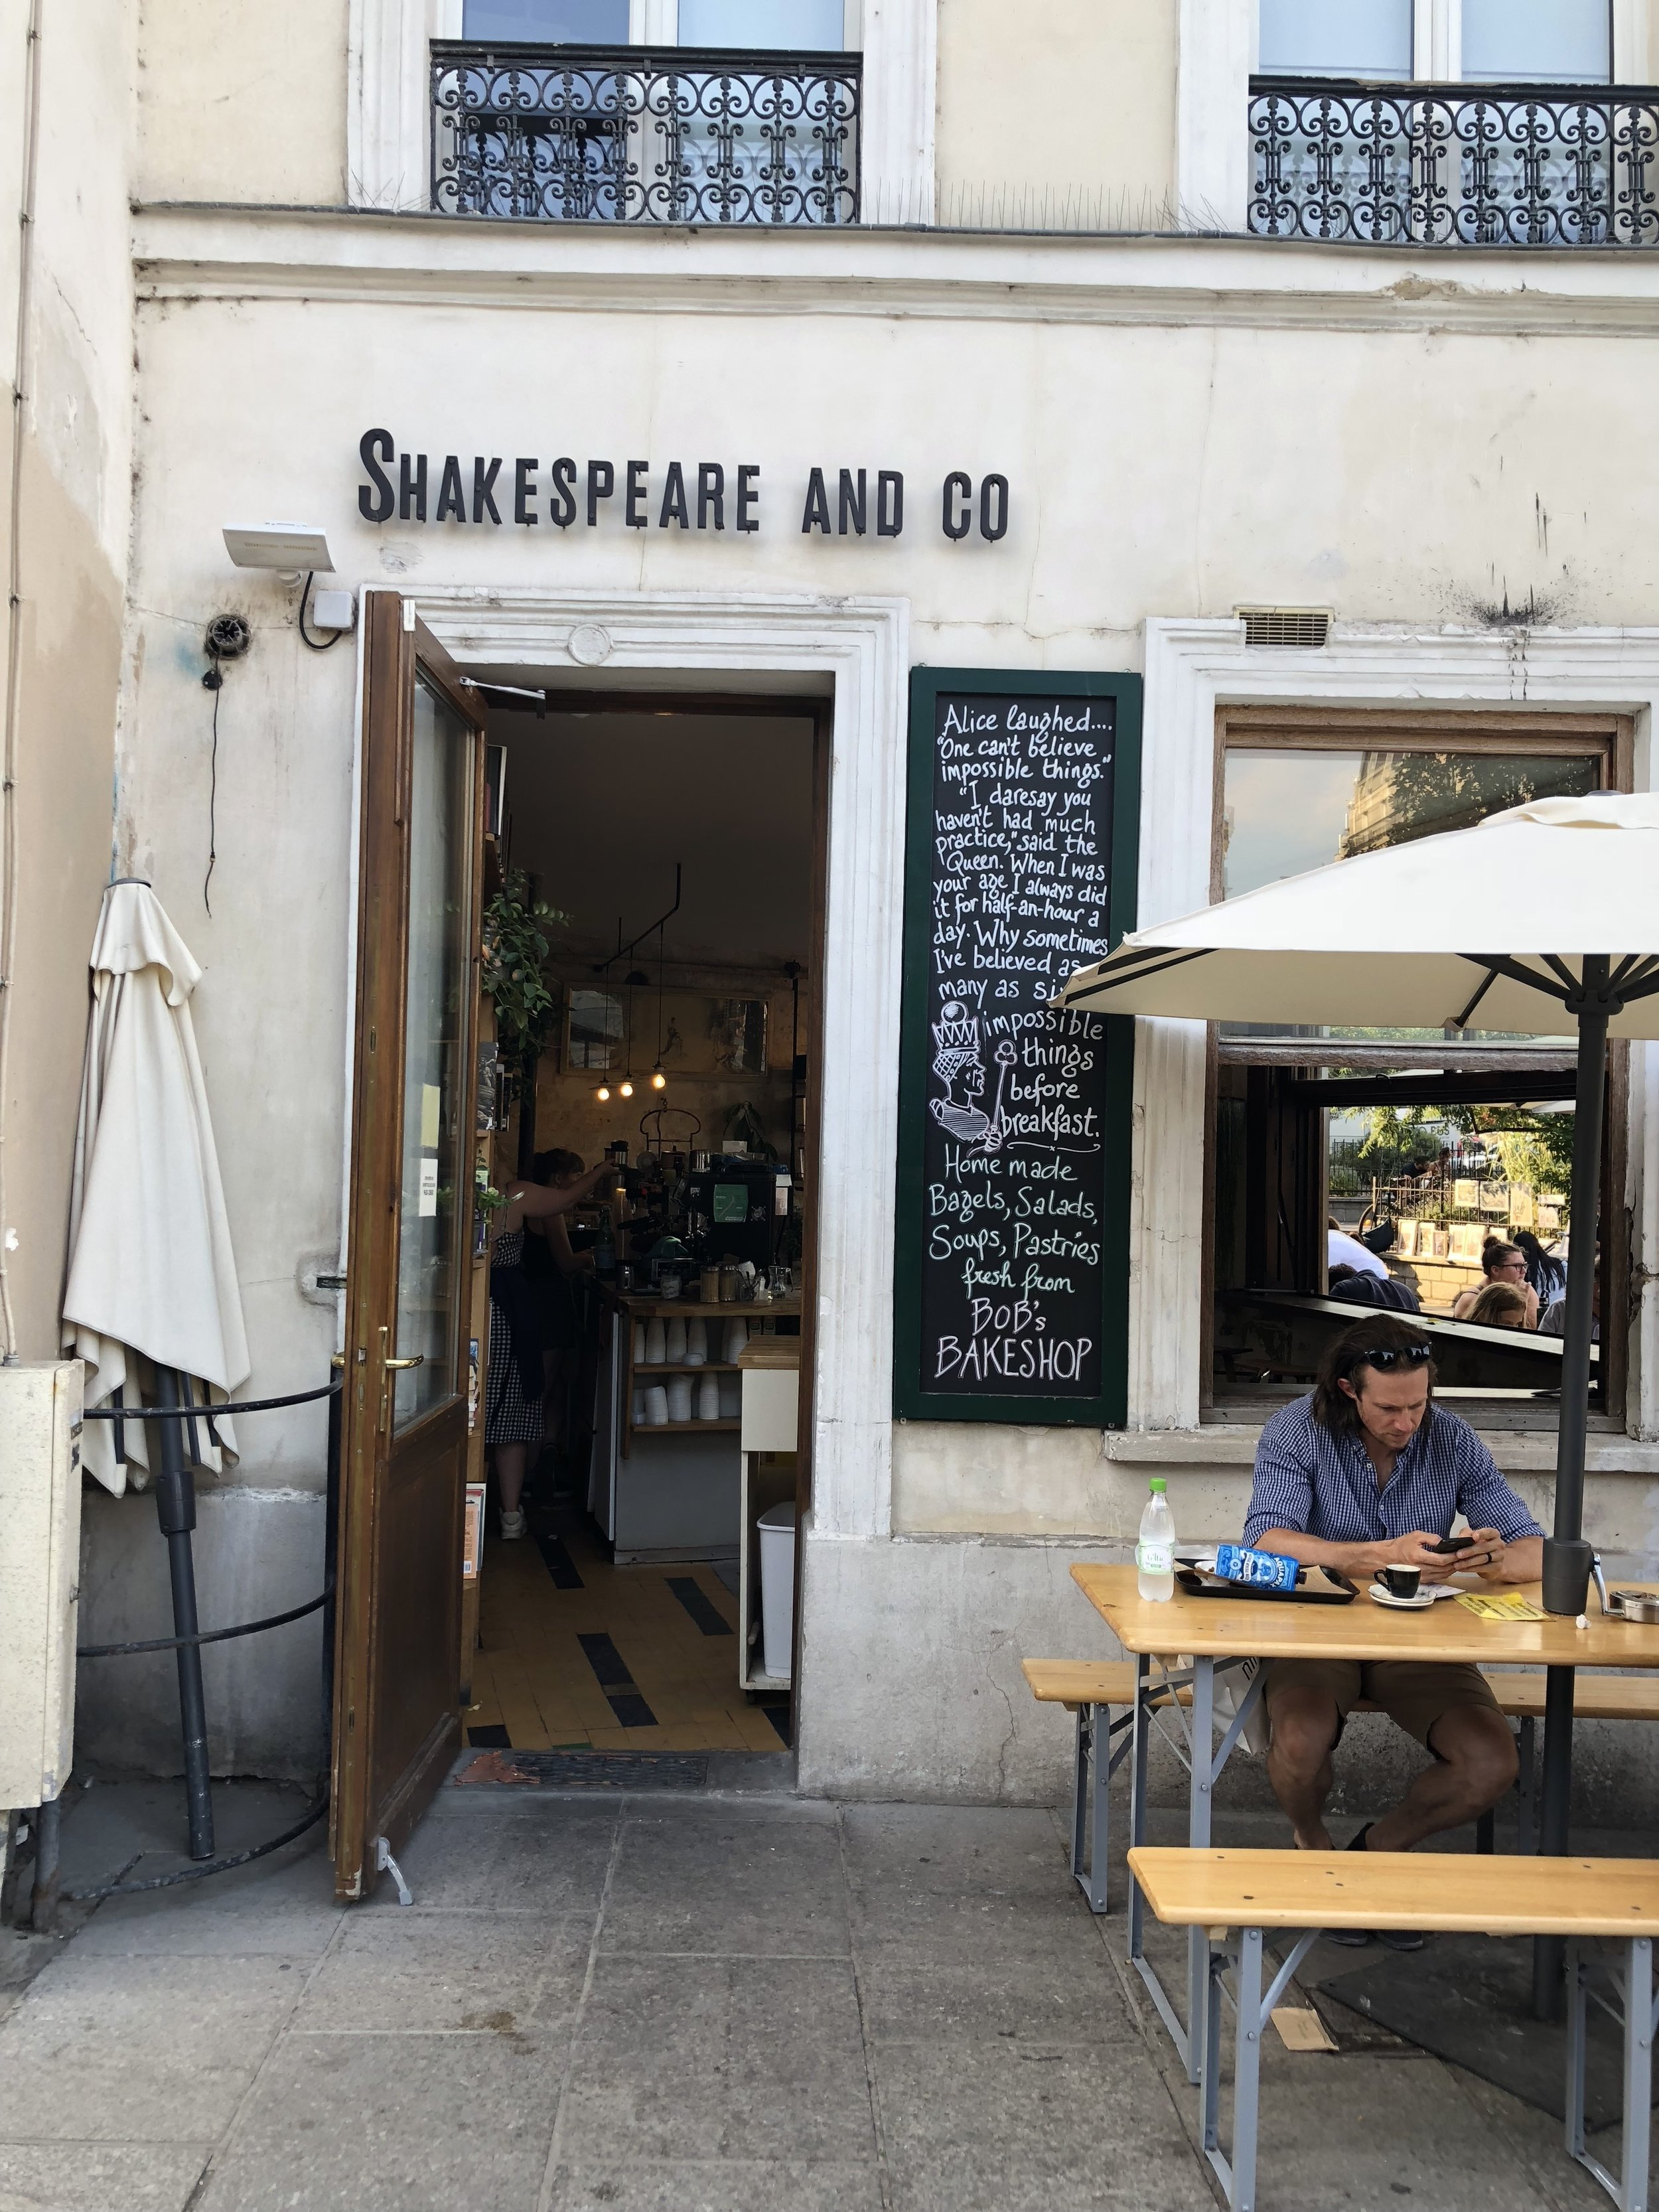 Hemingway and Shakespeare & Co.